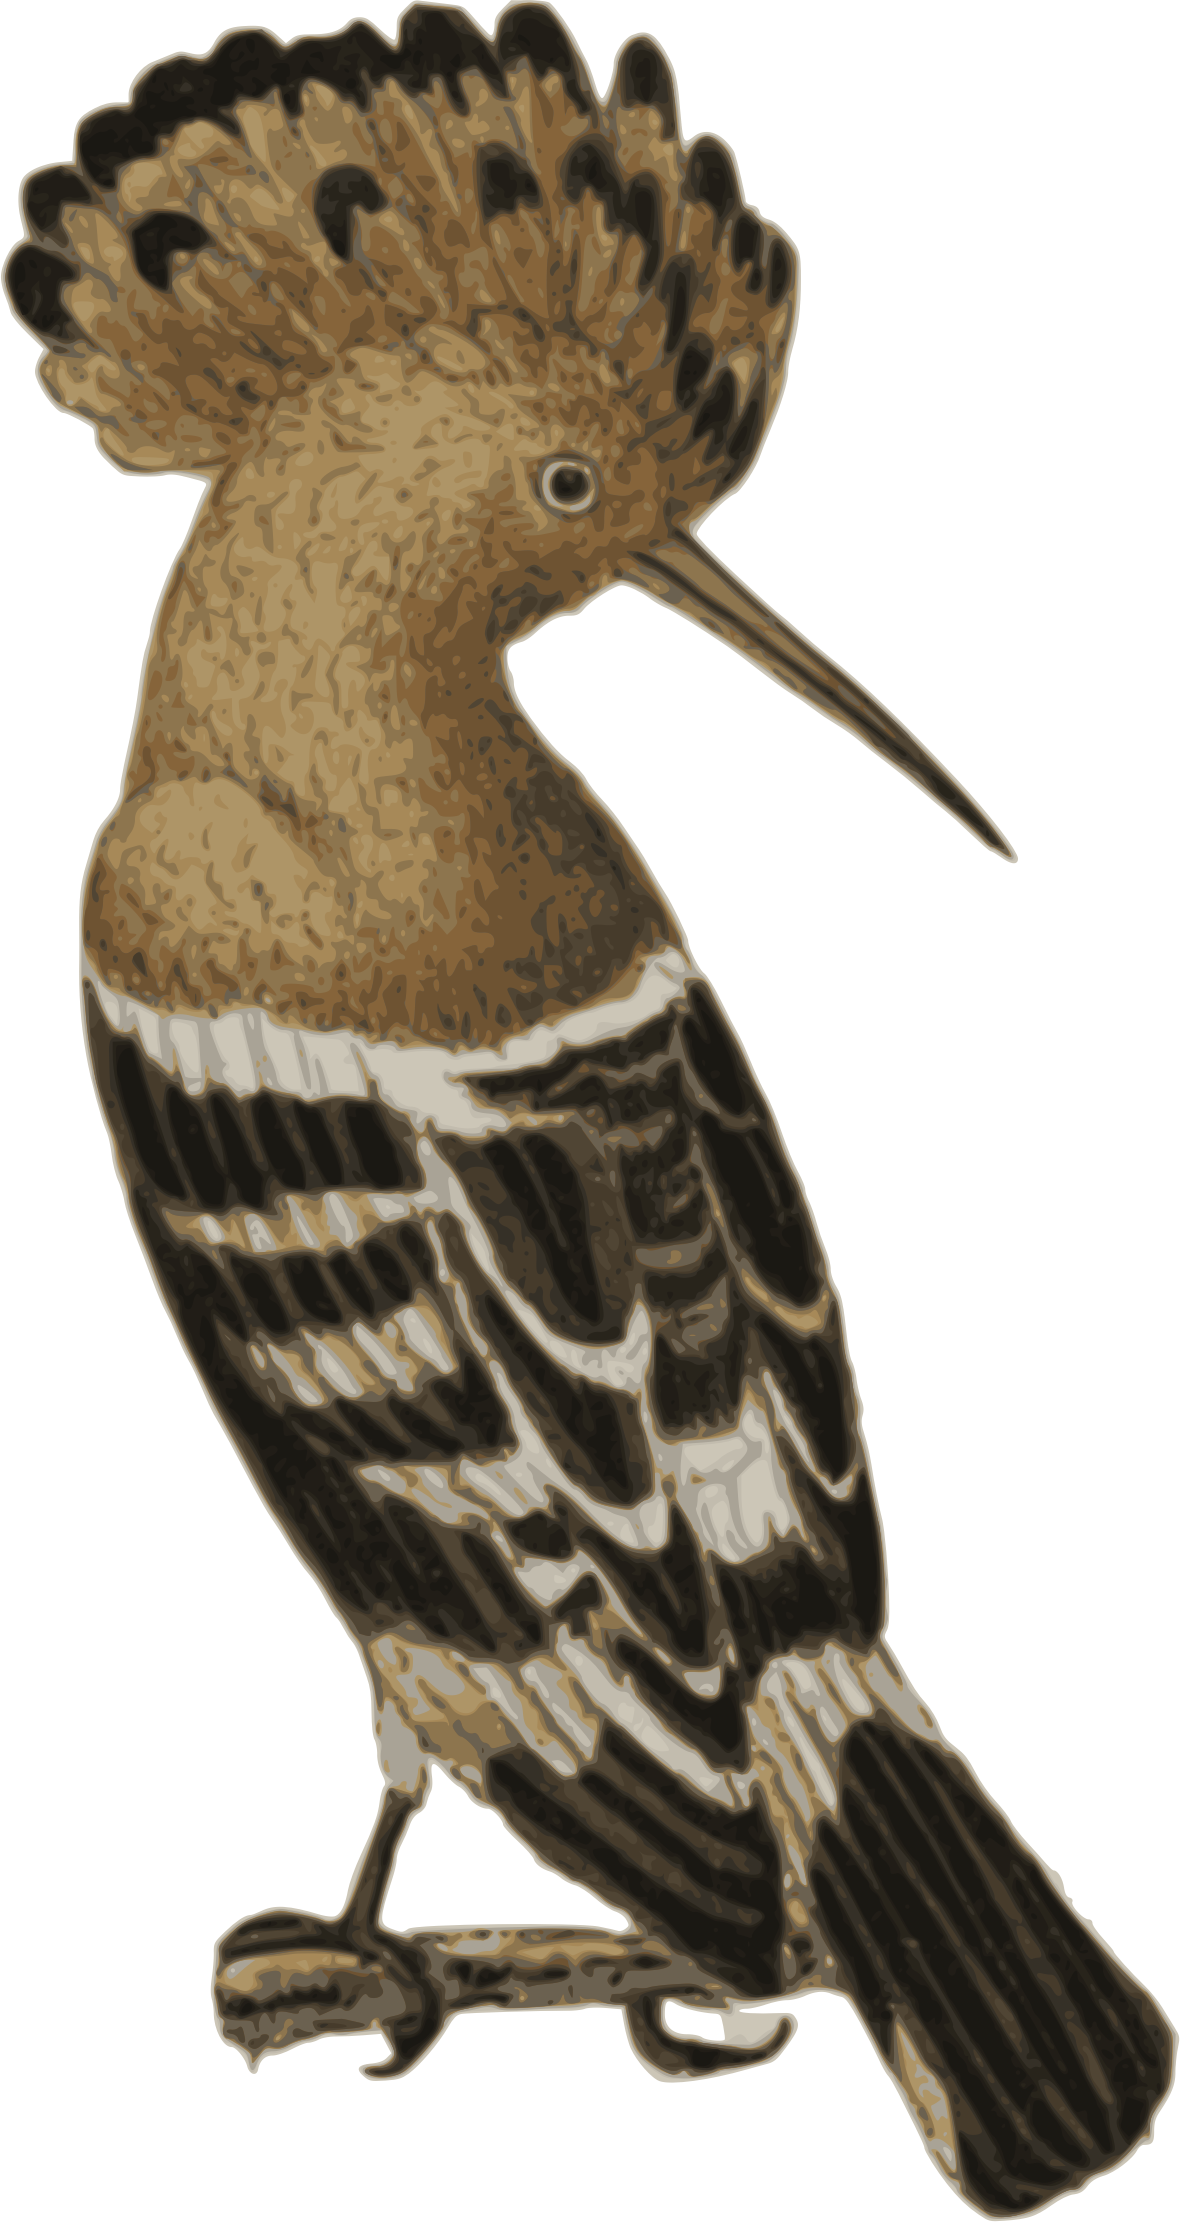 Hoopoe by addysgLLGC